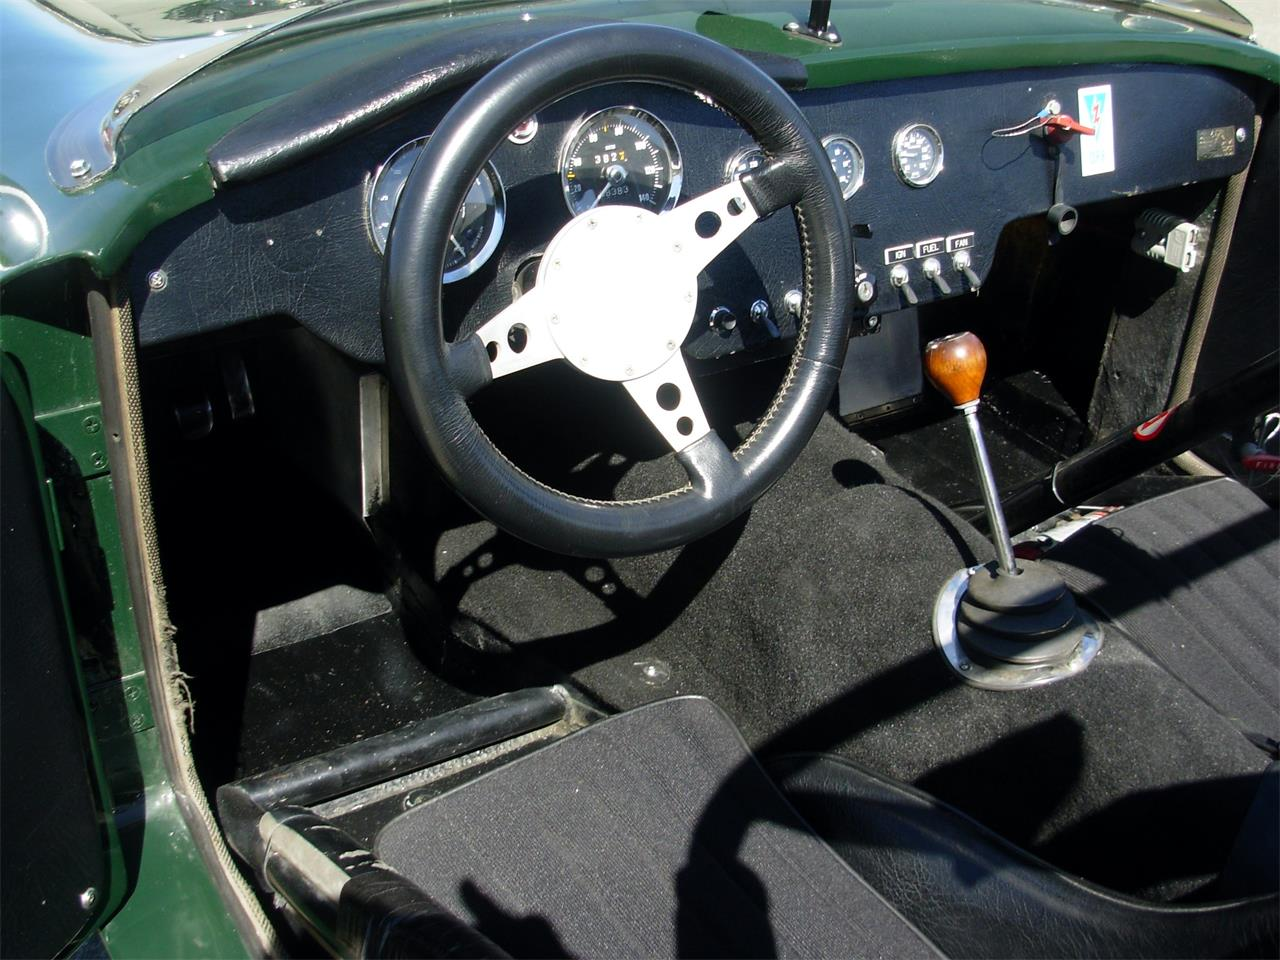 1963 Elva Courier Mark III for sale in Berkeley, CA – photo 8